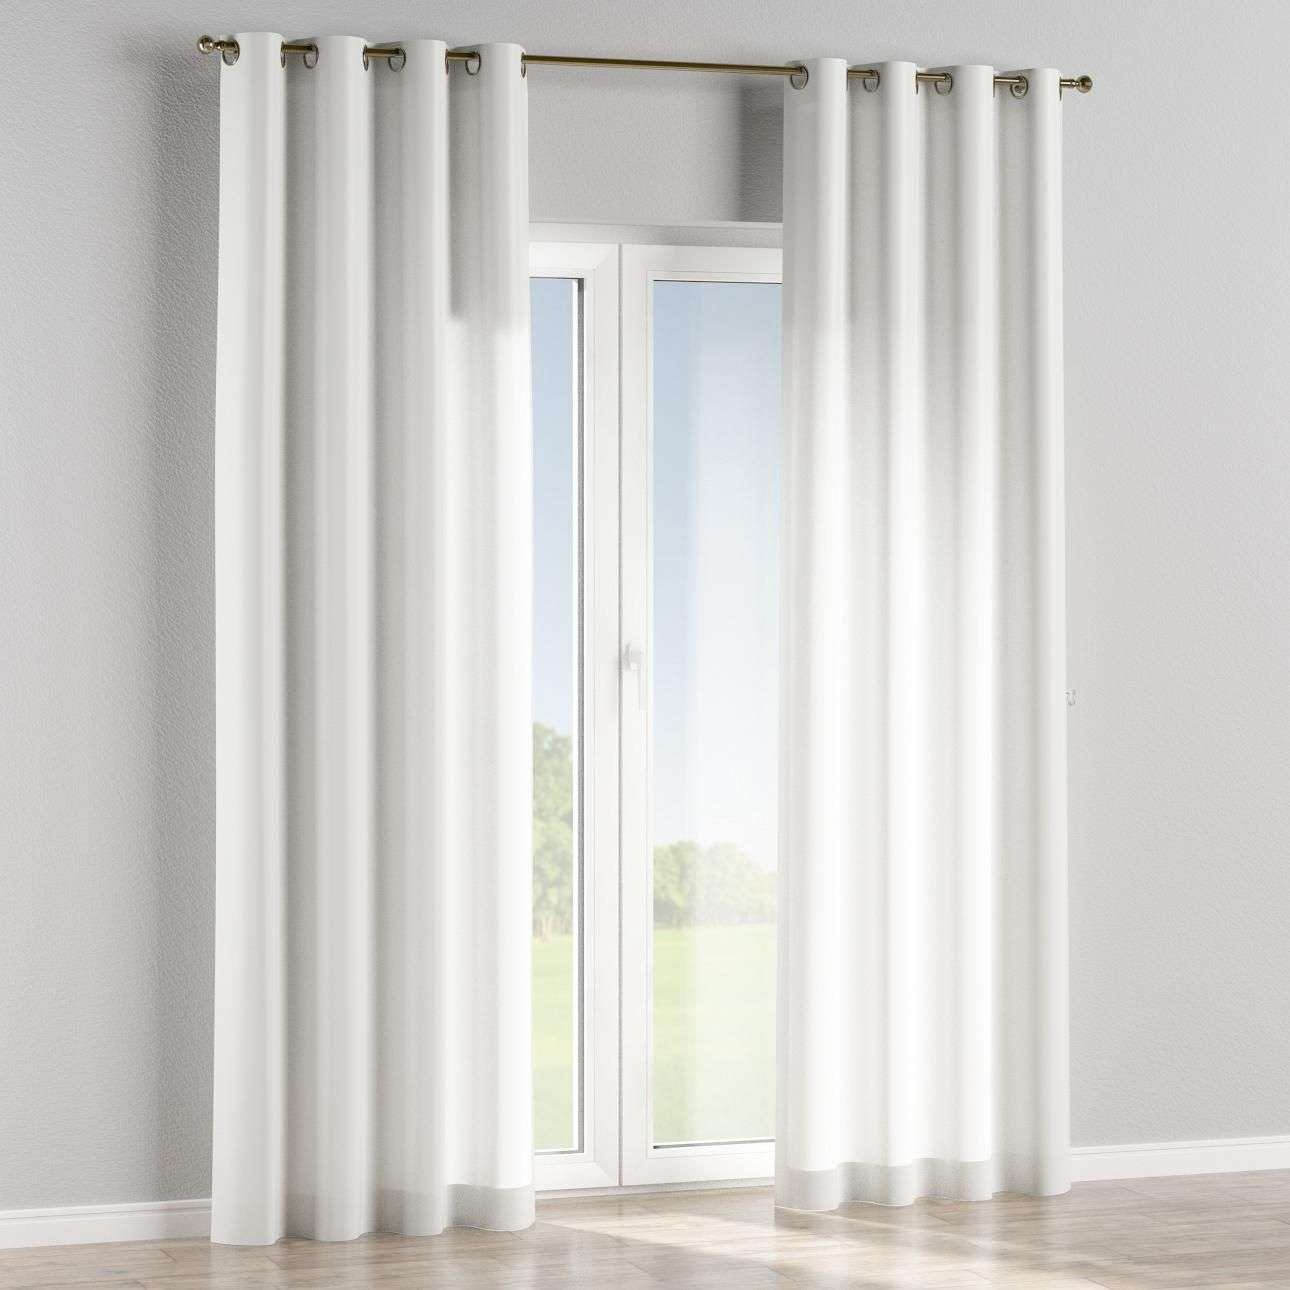 Eyelet lined curtains in collection Flowers, fabric: 311-06